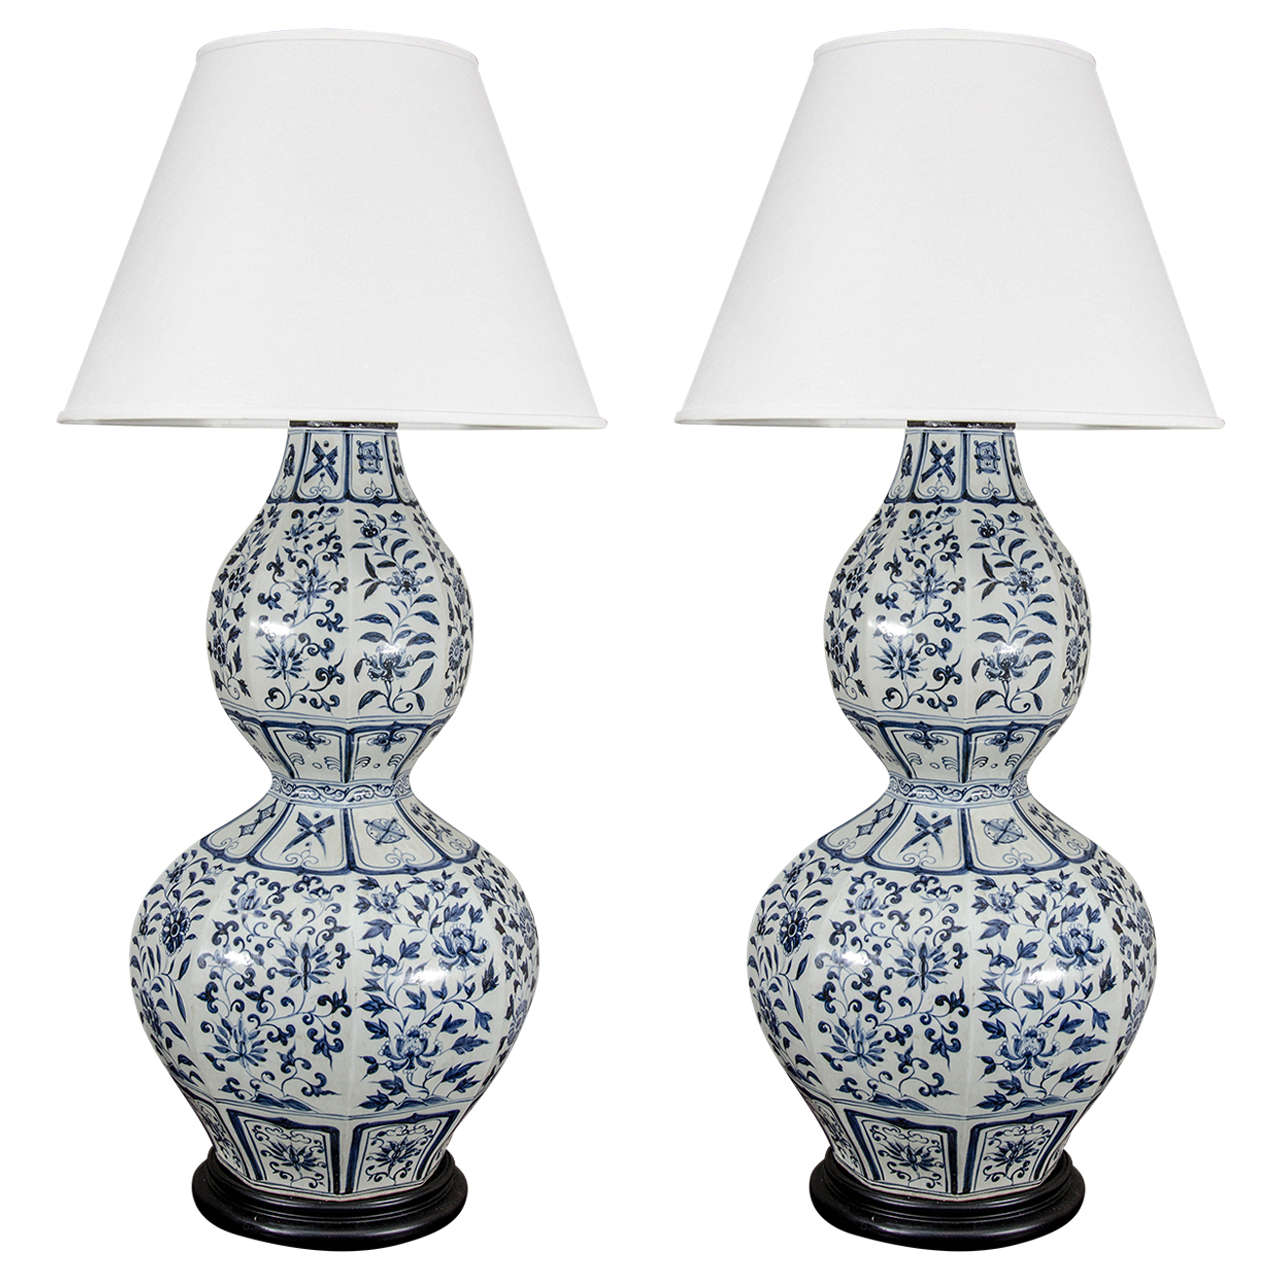 Pair of large chinese blue and white double gourd calabash vases pair of large chinese blue and white double gourd calabash vases wired as lamps for reviewsmspy